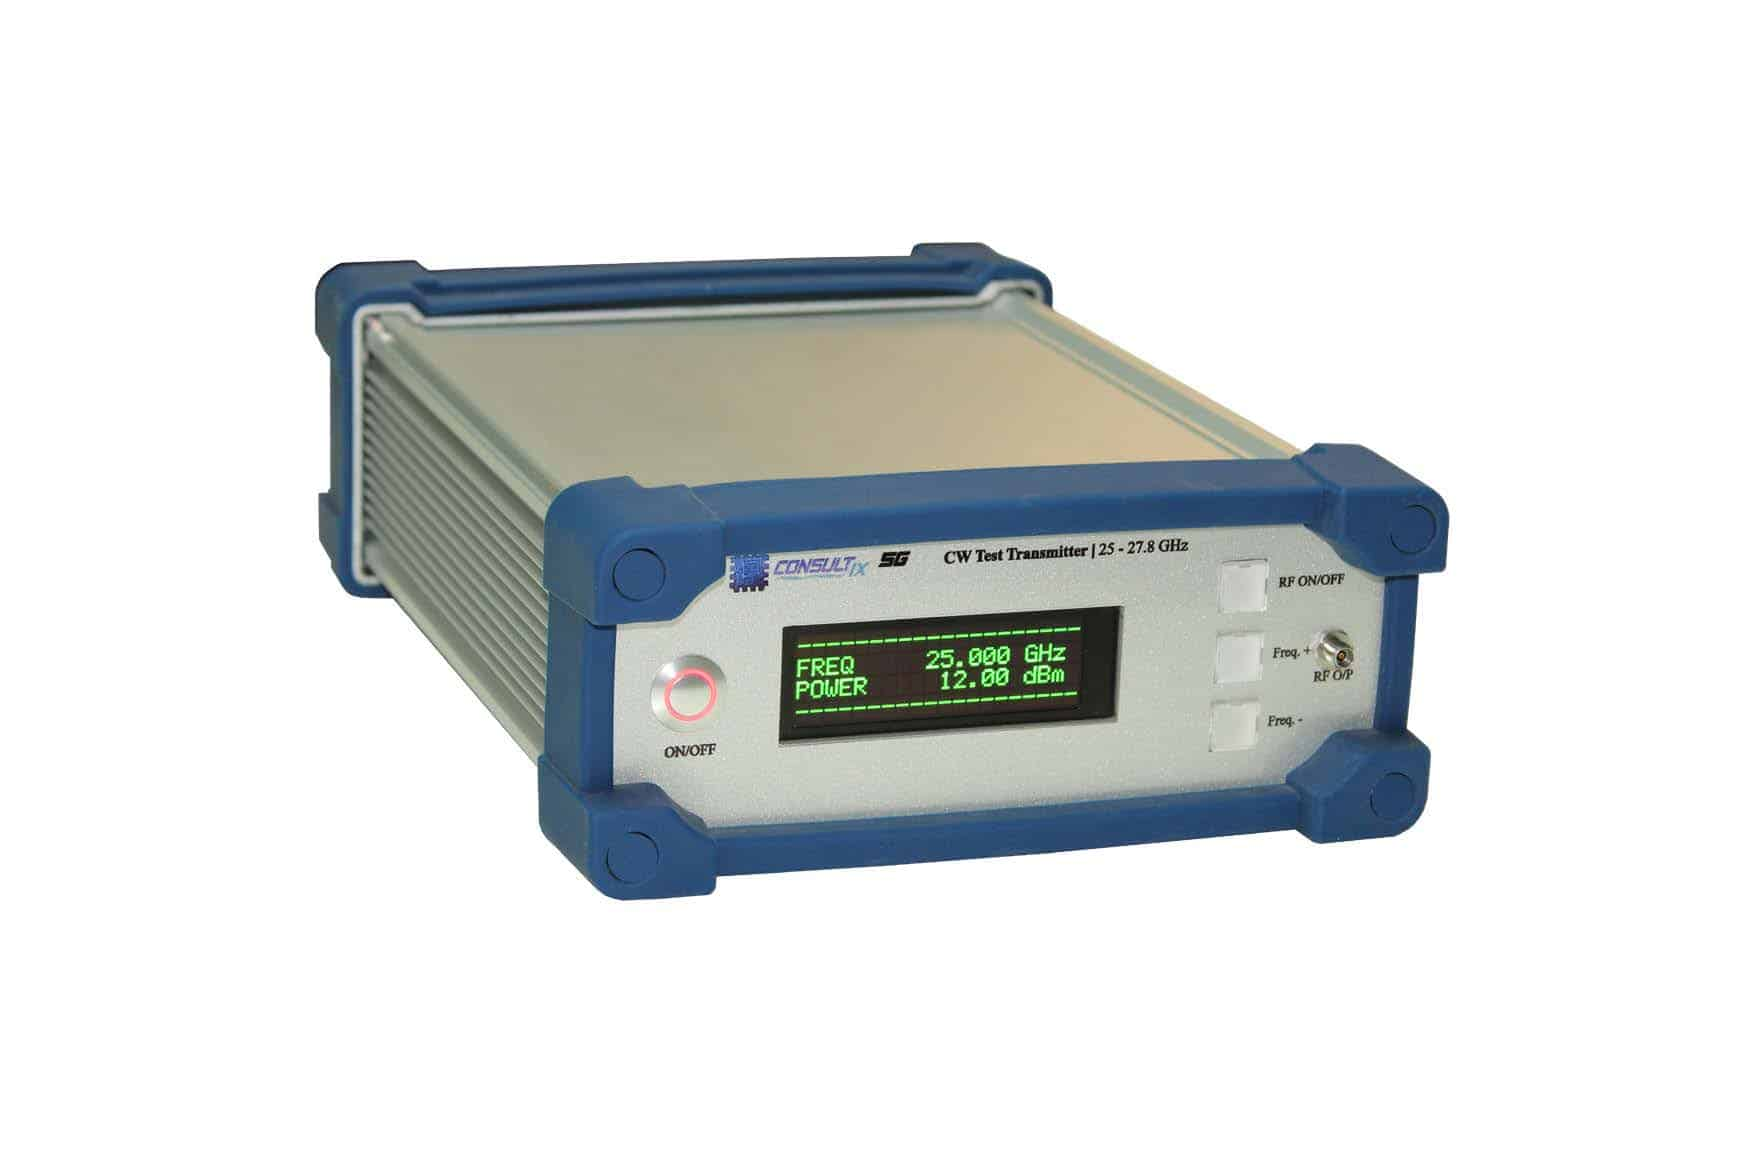 Consultix 5G CW Transmitter